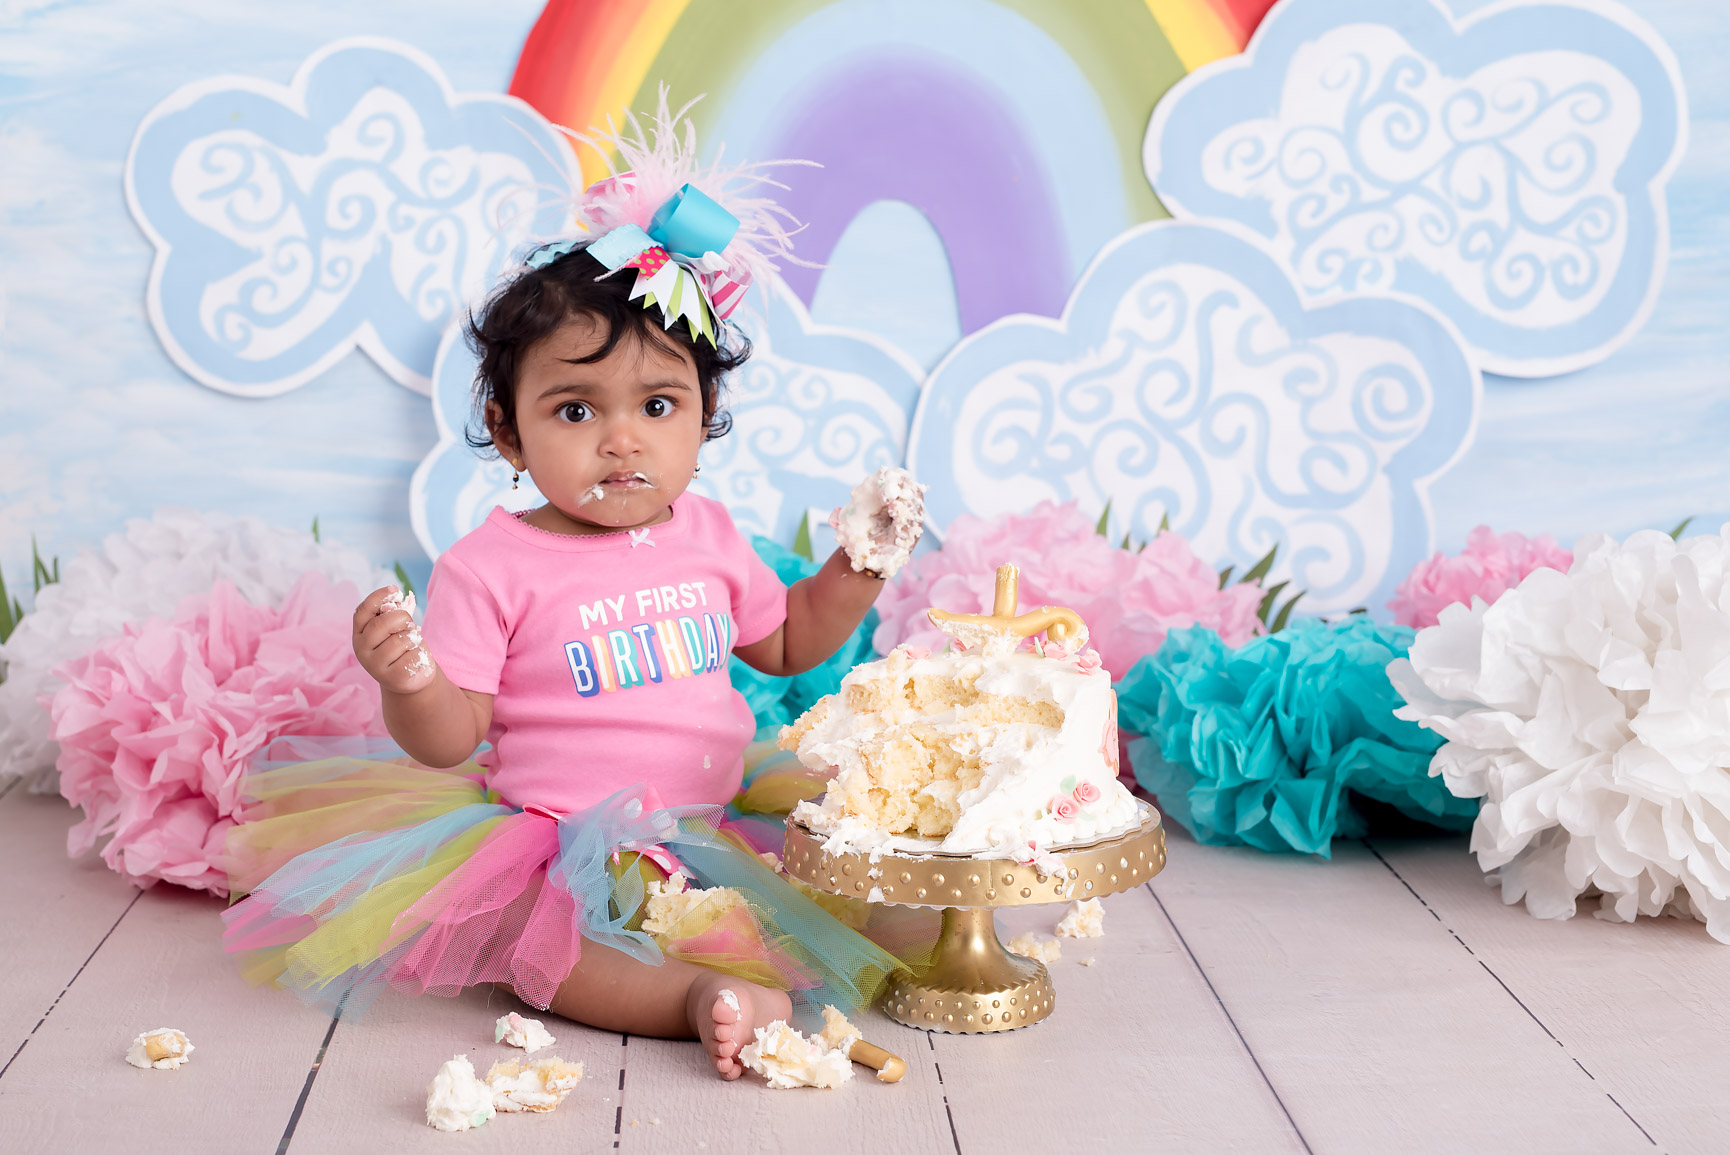 Cake Smash Anjeli DSC_9379-Edit.jpg